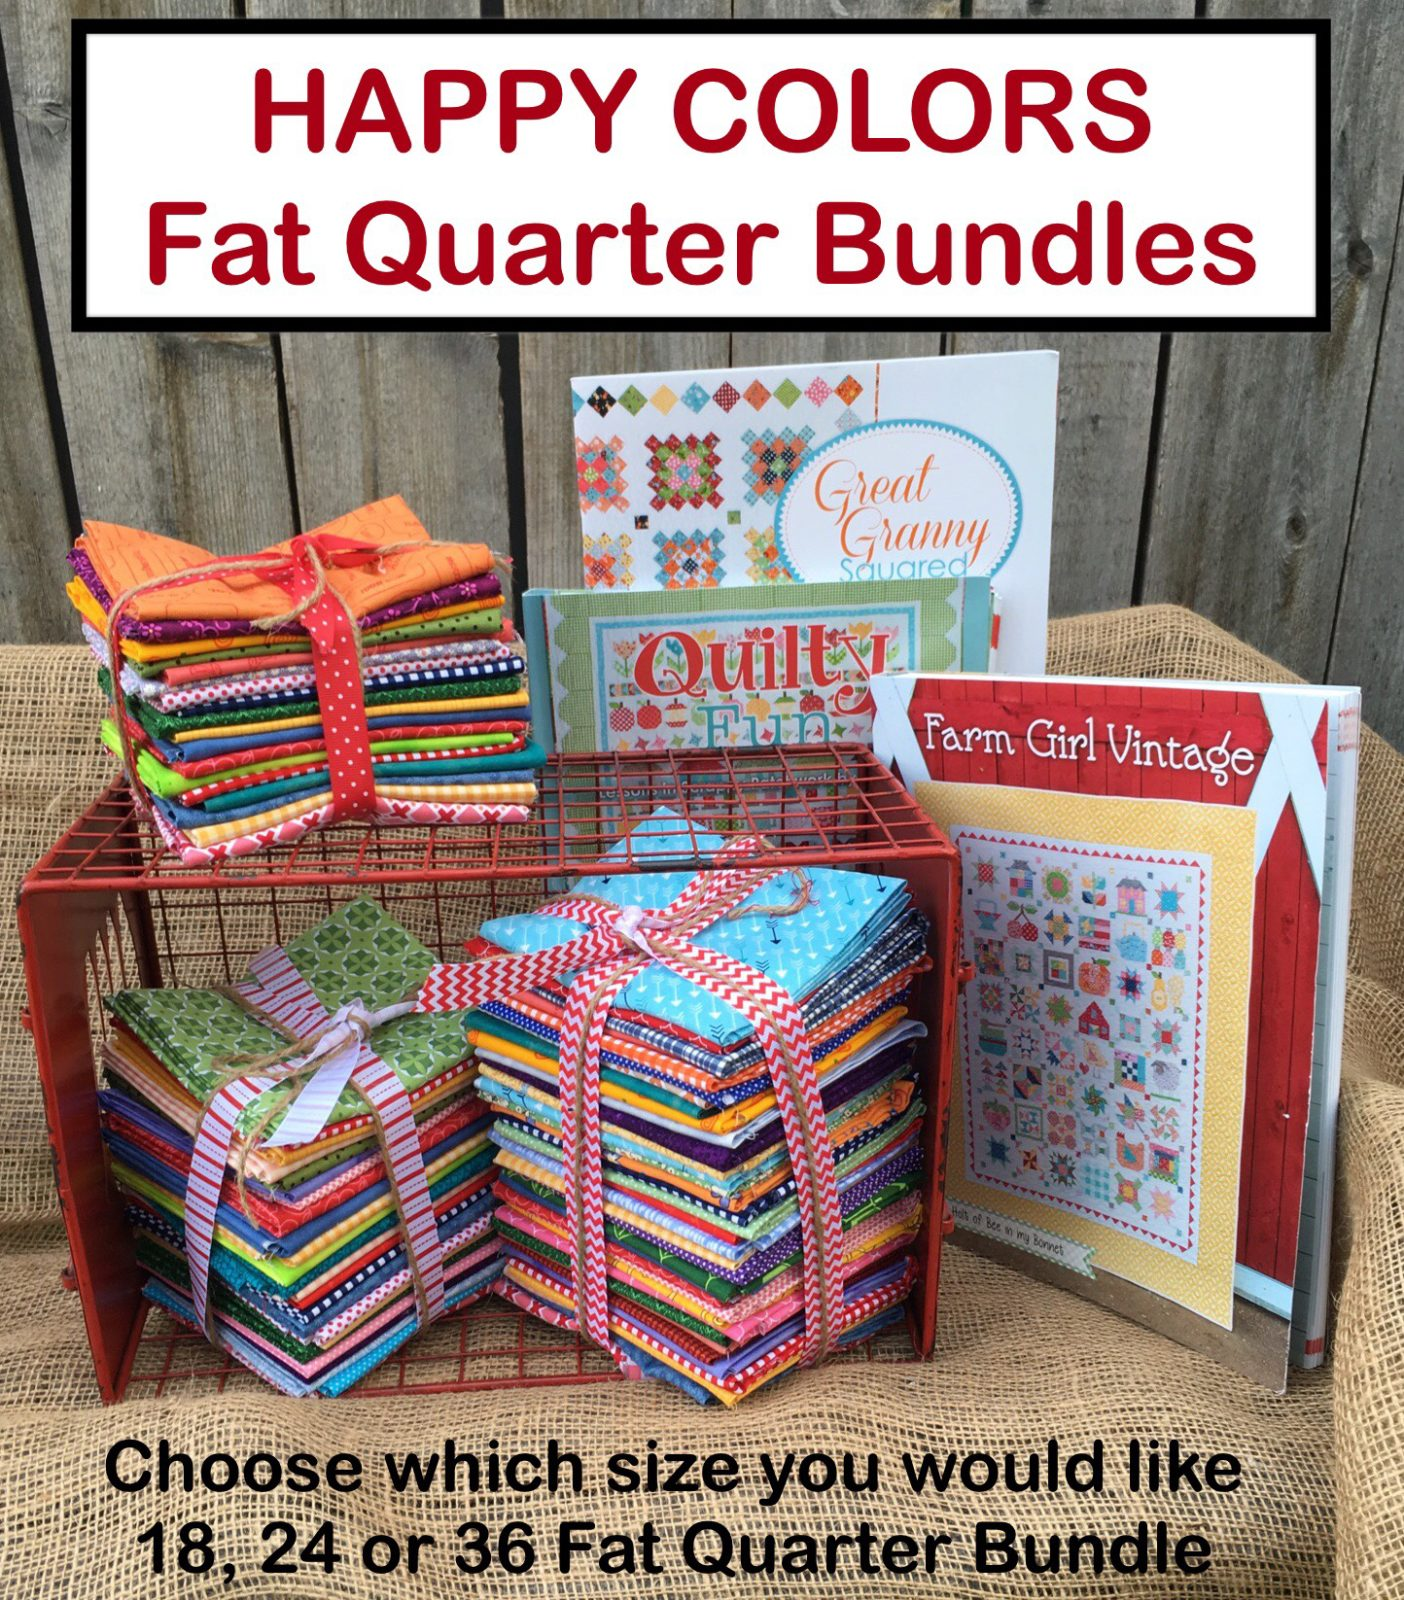 HAPPY COLORS Fat Quarter Bundle for Farm Girl Vintage Quilty Fun or Great Granny Squared